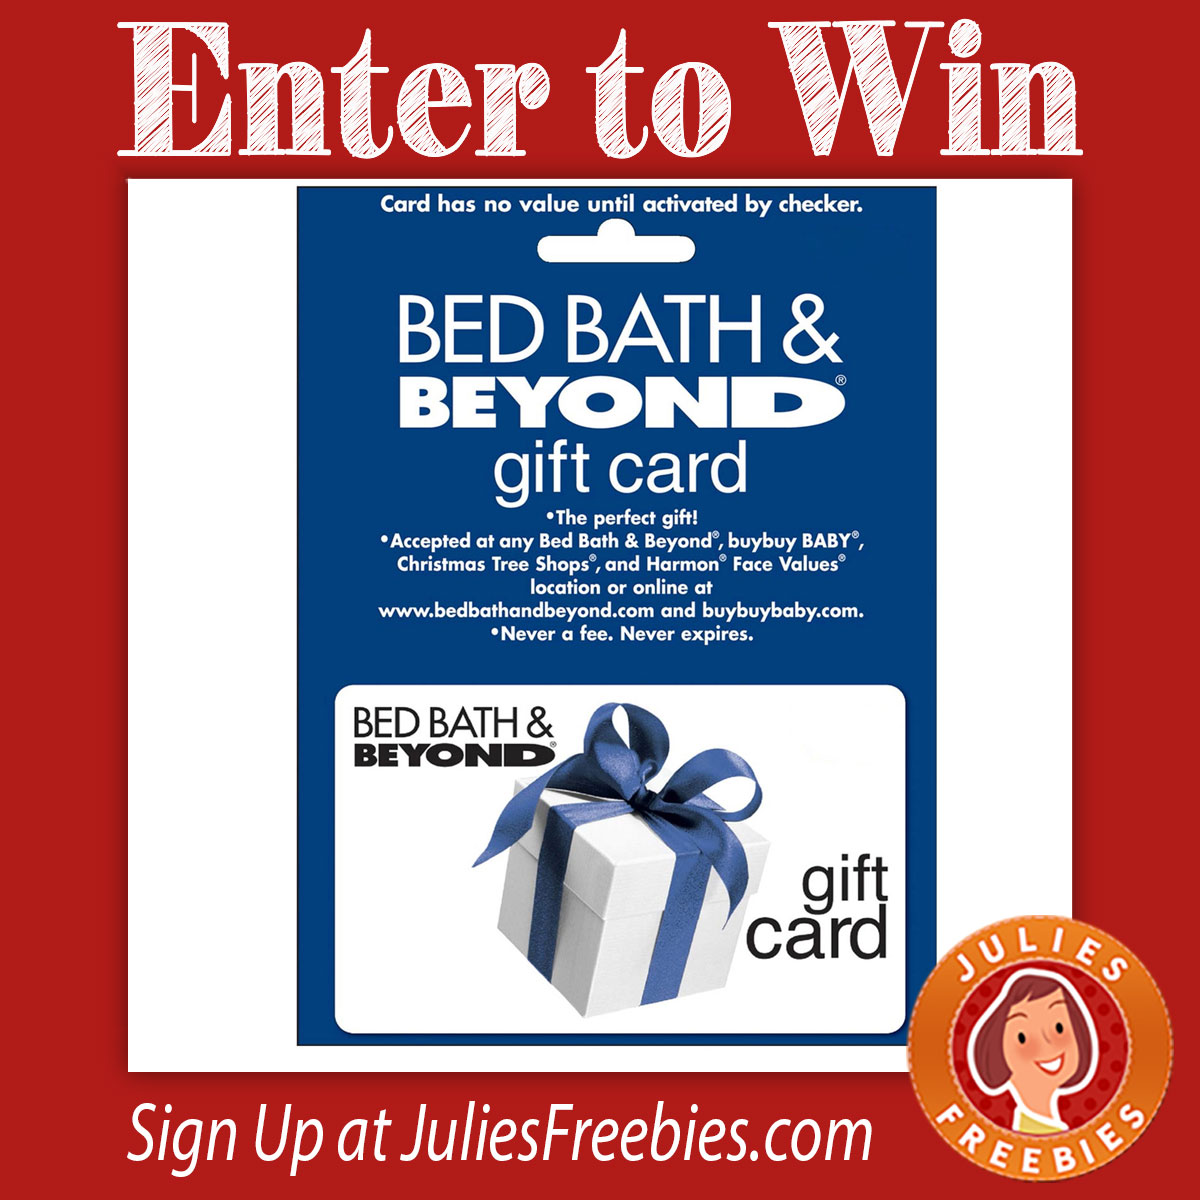 bedbathandbeyond here is an offer where you can enter to win a bed bath and beyond gift card